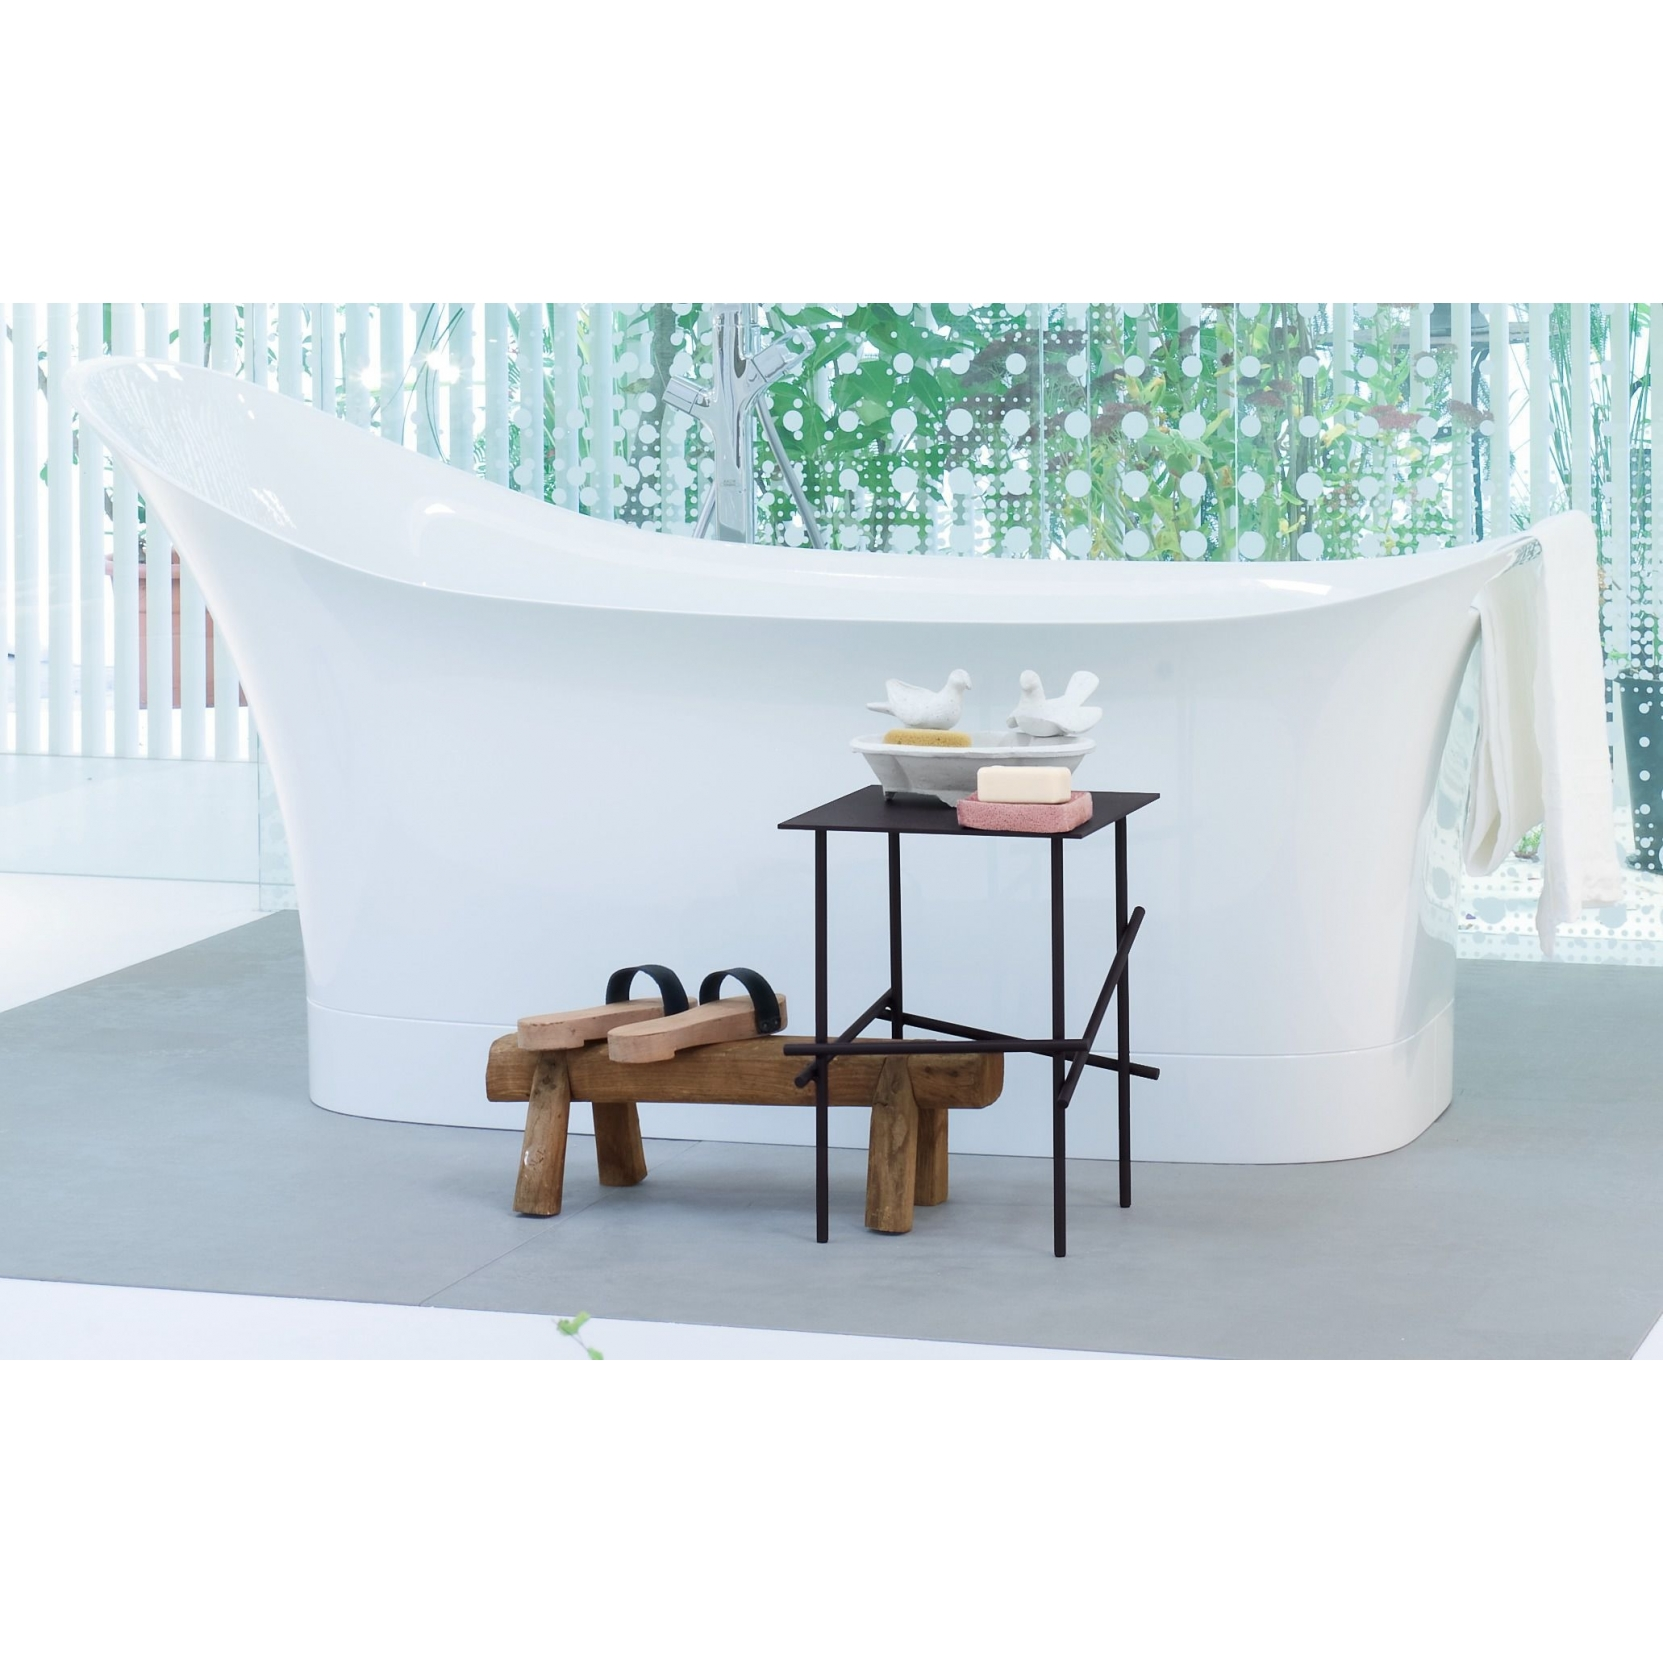 AXOR HANSGROHE URQUIOLA FREESTANDING BATHTUB IN STOCK - TattaHome